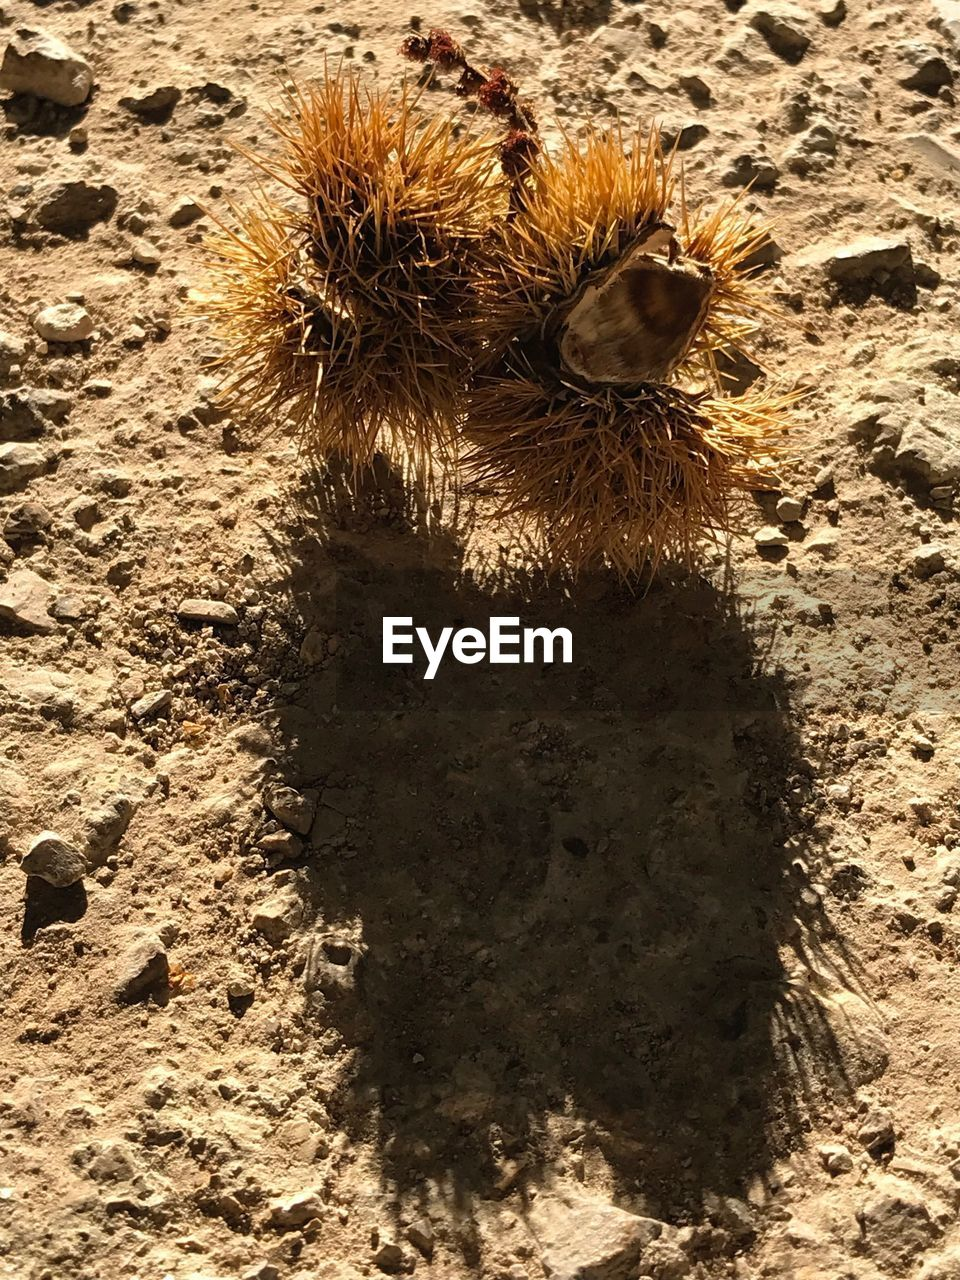 animal, animal wildlife, animal themes, sunlight, nature, one animal, land, animals in the wild, no people, day, invertebrate, insect, high angle view, sand, close-up, outdoors, shadow, spiked, brown, beach, arid climate